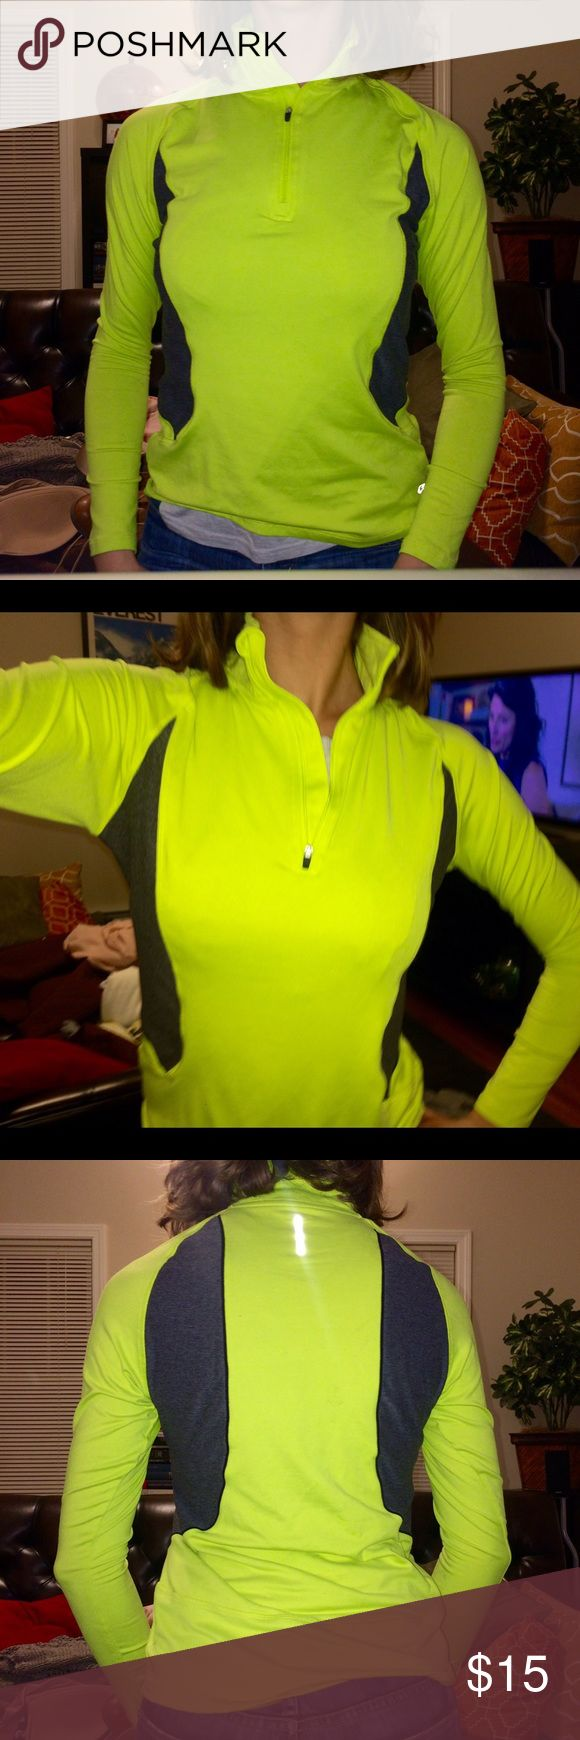 Athletic half zip pullover Great condition. Neon yellow (slightly lighter, not so annoyingly neon) and grey half zip, pullover. Size small Tops